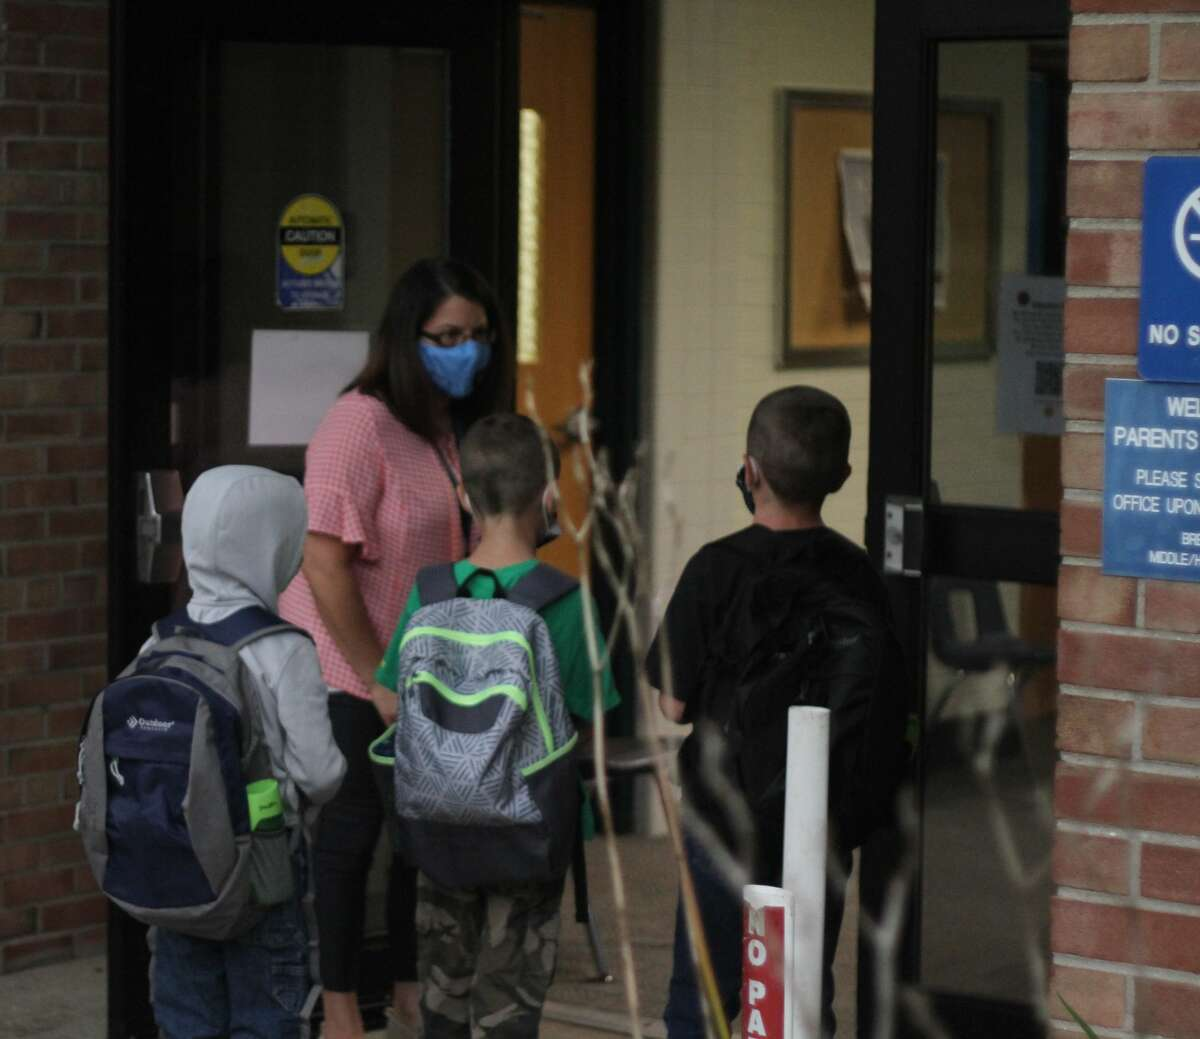 Students at Kaleva Norman Dickson Schools return for the first day of school on Sept. 8. Manistee County schools have had to adapt in order to provide a quality education in the midst of the coronavirus pandemic.